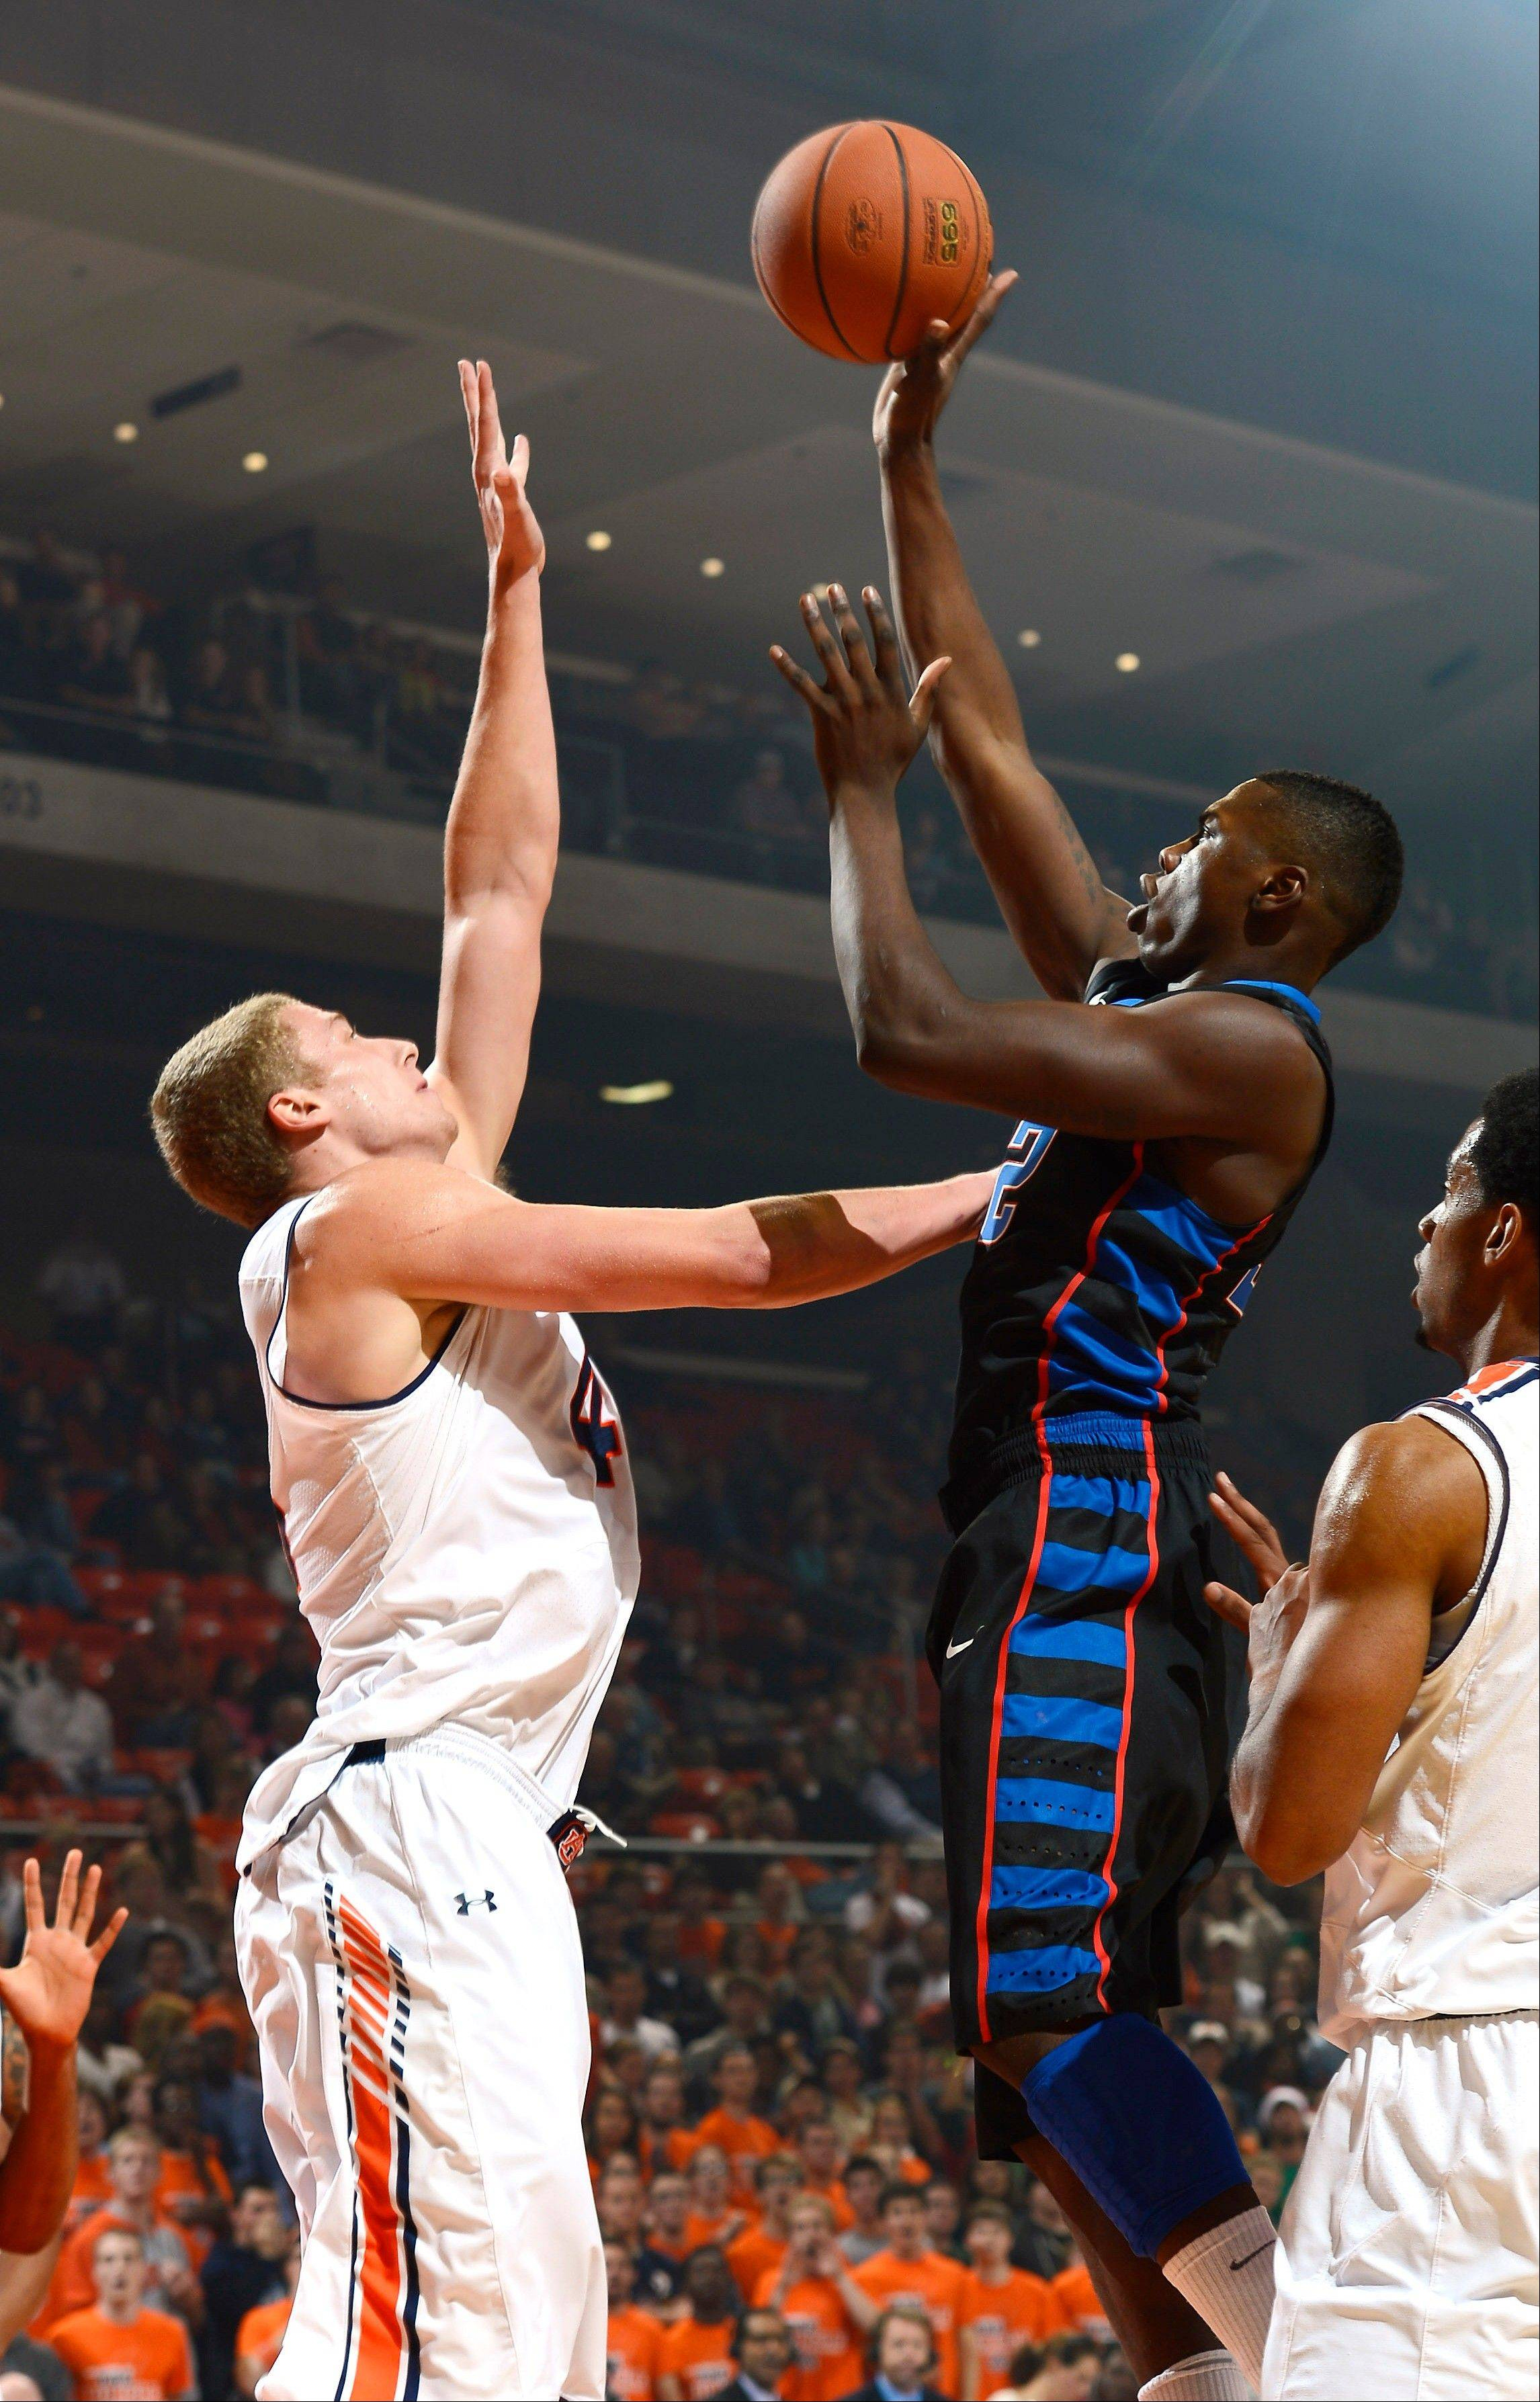 DePaul's Charles McKinney shoots over Auburn's Rob Chubb Friday during the first half in Auburn, Ala.